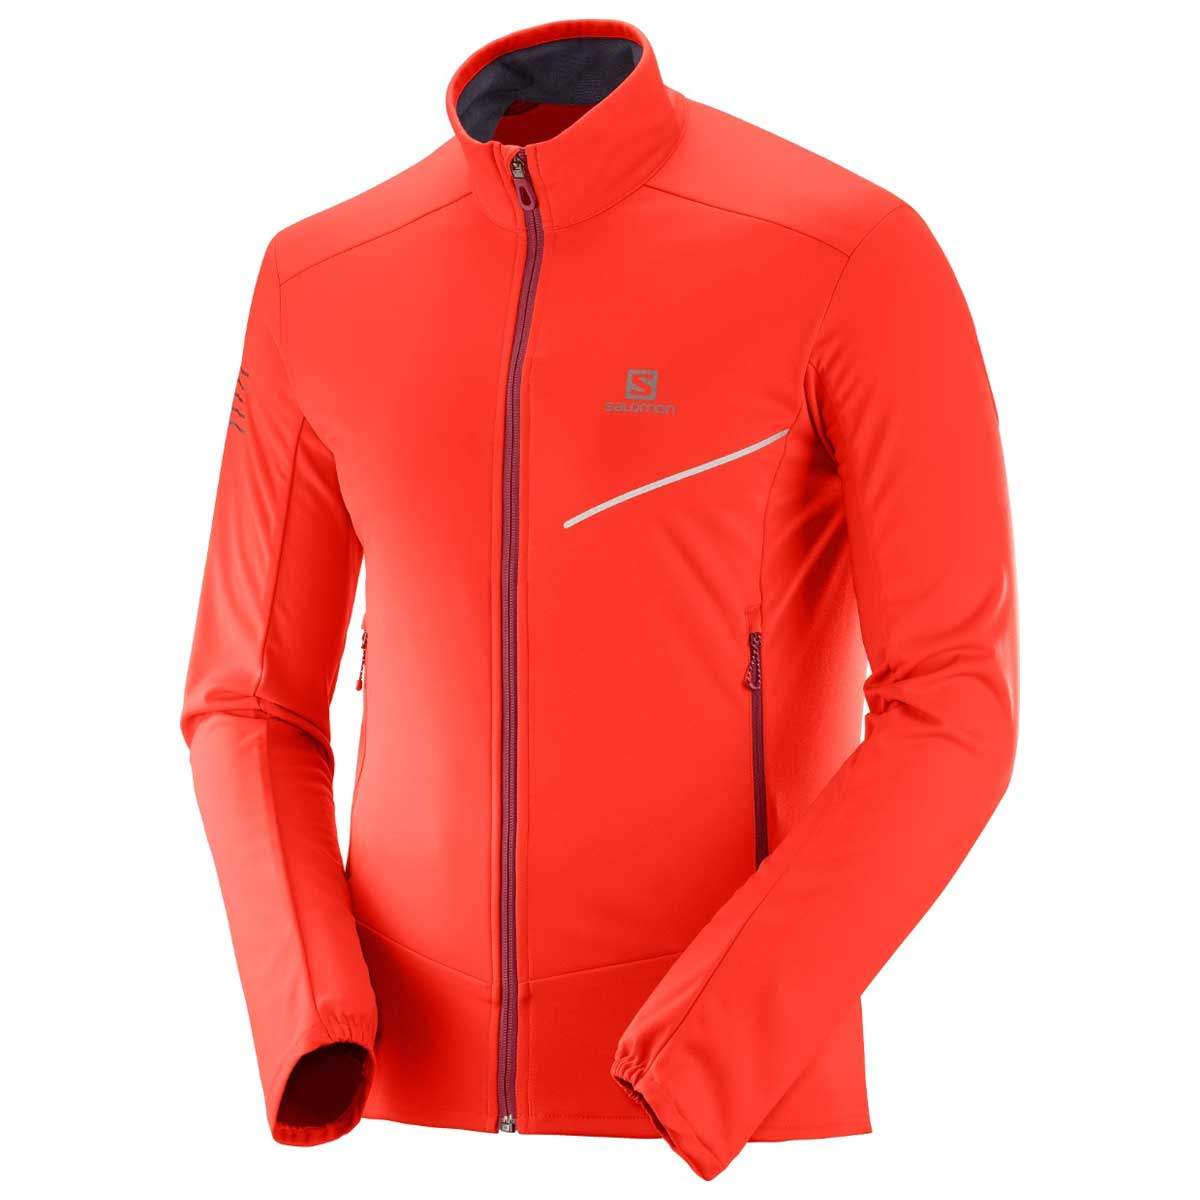 Salomon Men's RS Softshell Jacket in Fiery Red and Biking Red